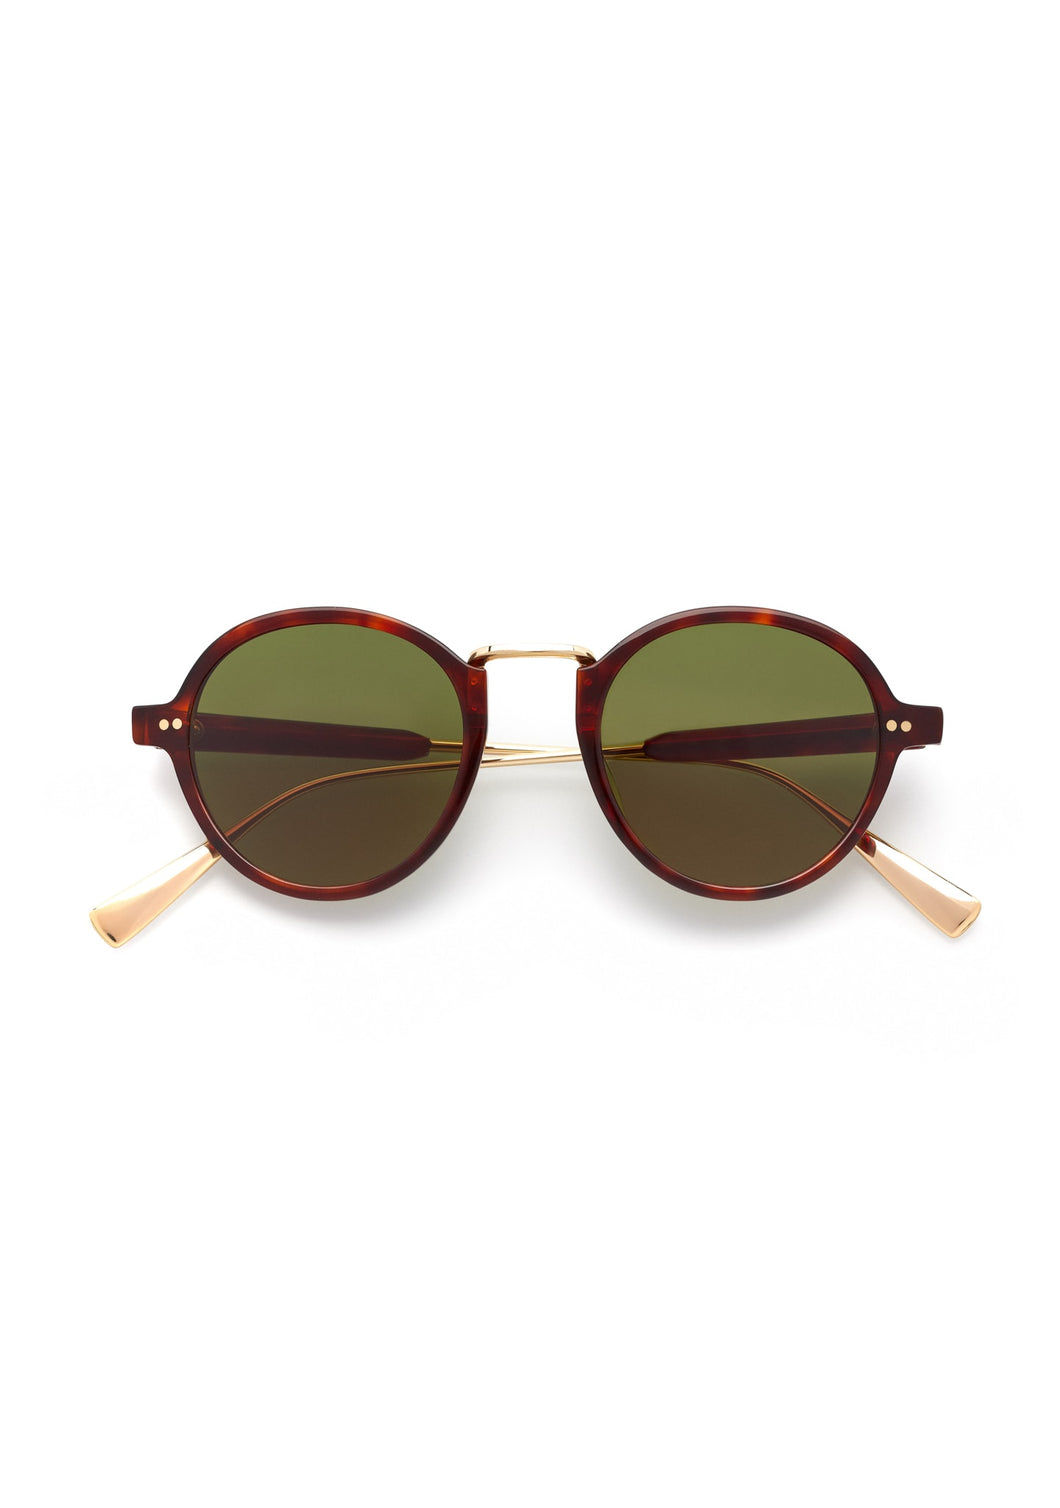 Kaleos Sunglasses Lovell 5